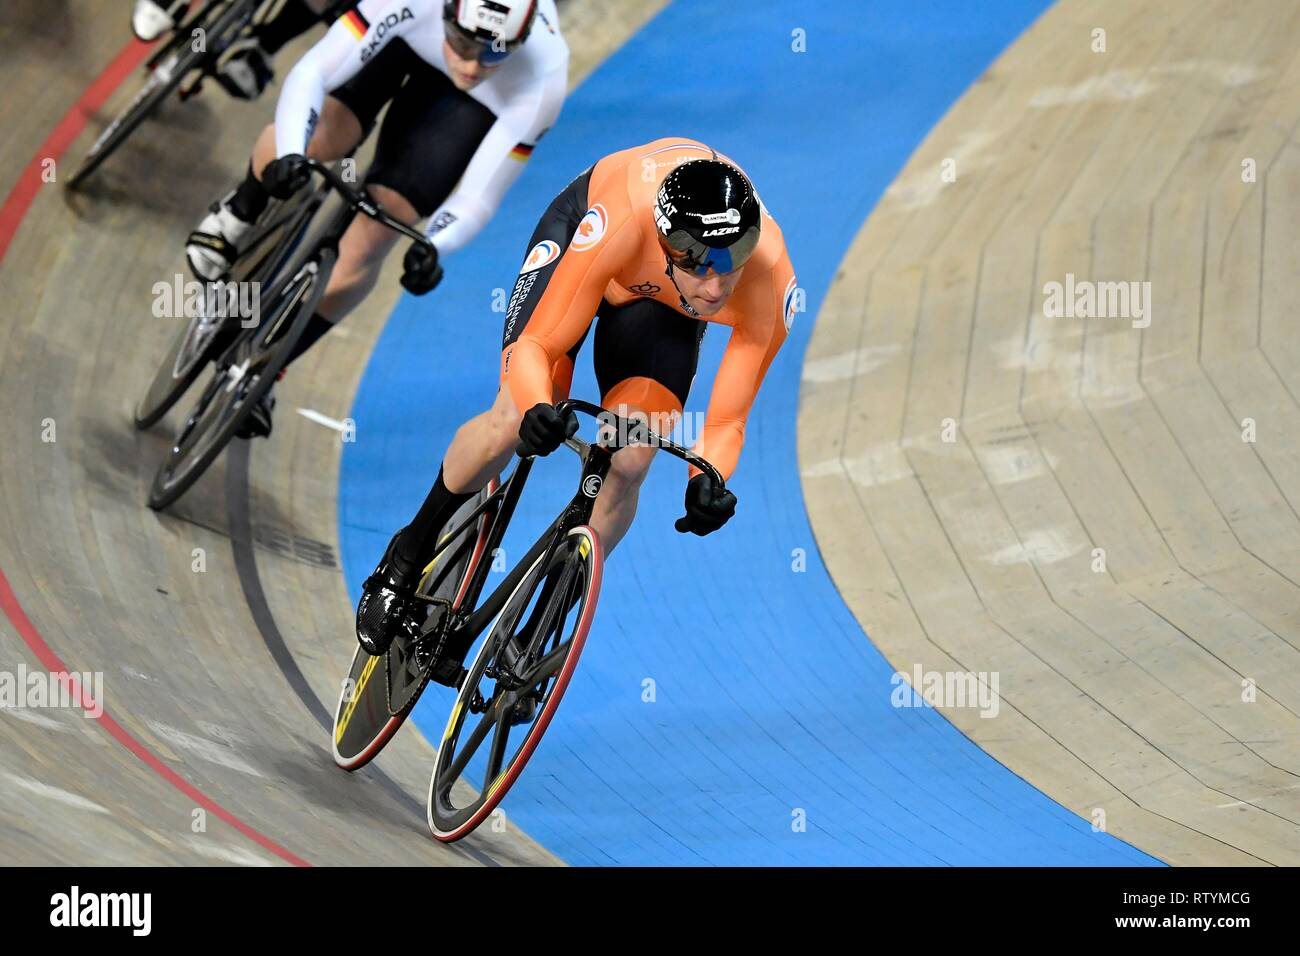 Track Cycling World Championships 2019 Uci On February 28 2019 At